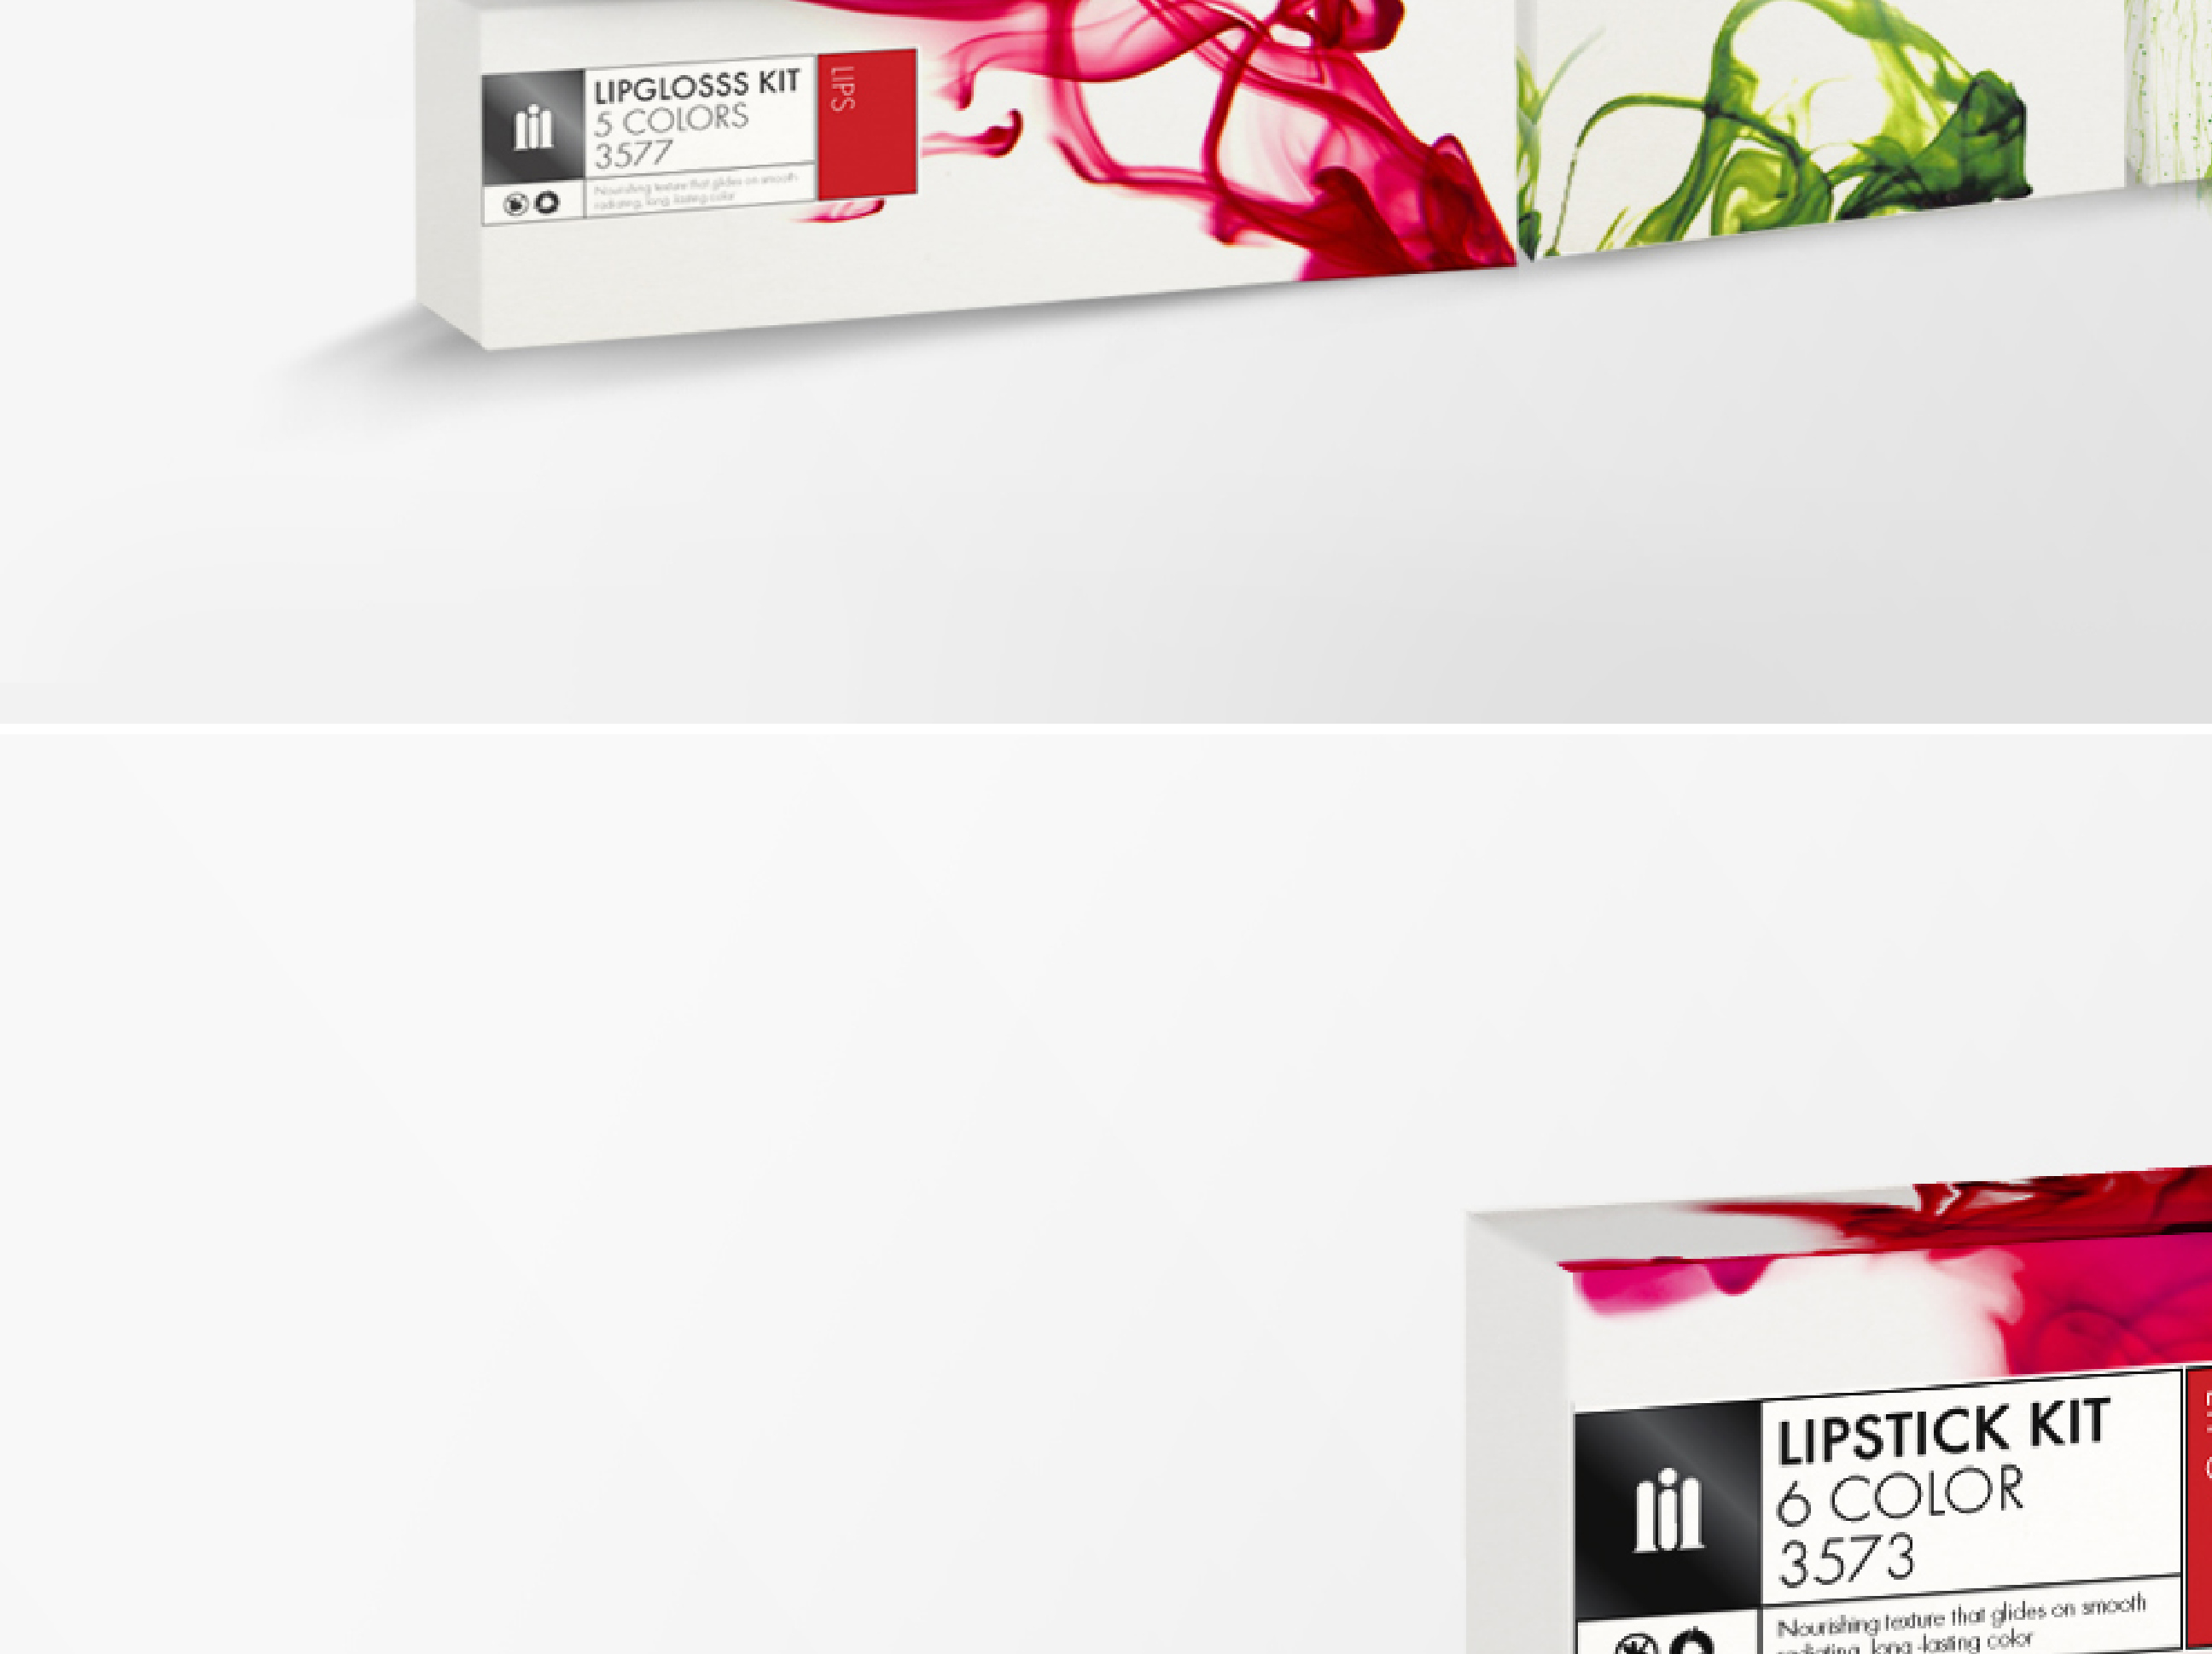 il-makiage-packagings4